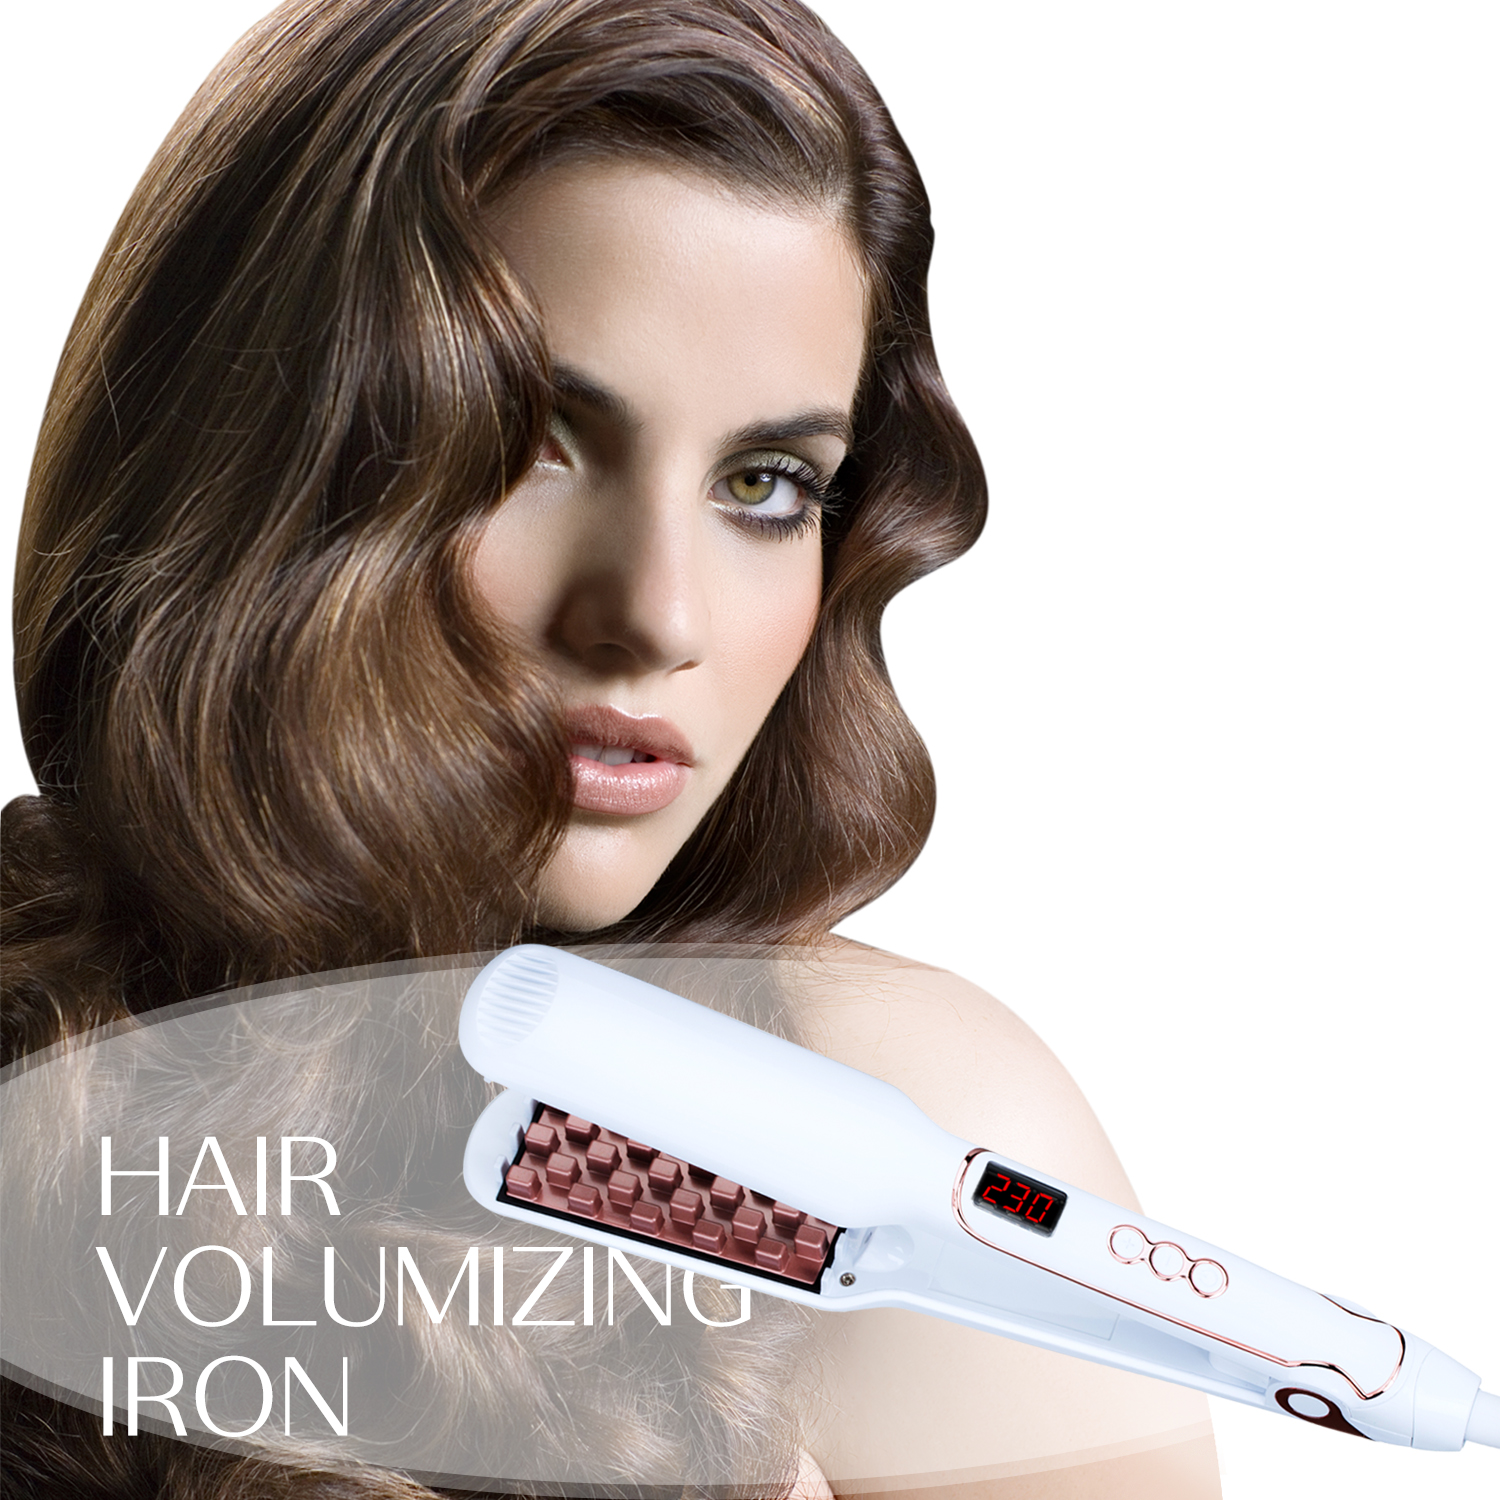 Fluffy Hair Straightener Hair Volumizing Iron Flacheisen Digitales Bügeleisen mit LCD-Display Elektrischer Fluffy Styling Hair Lifter